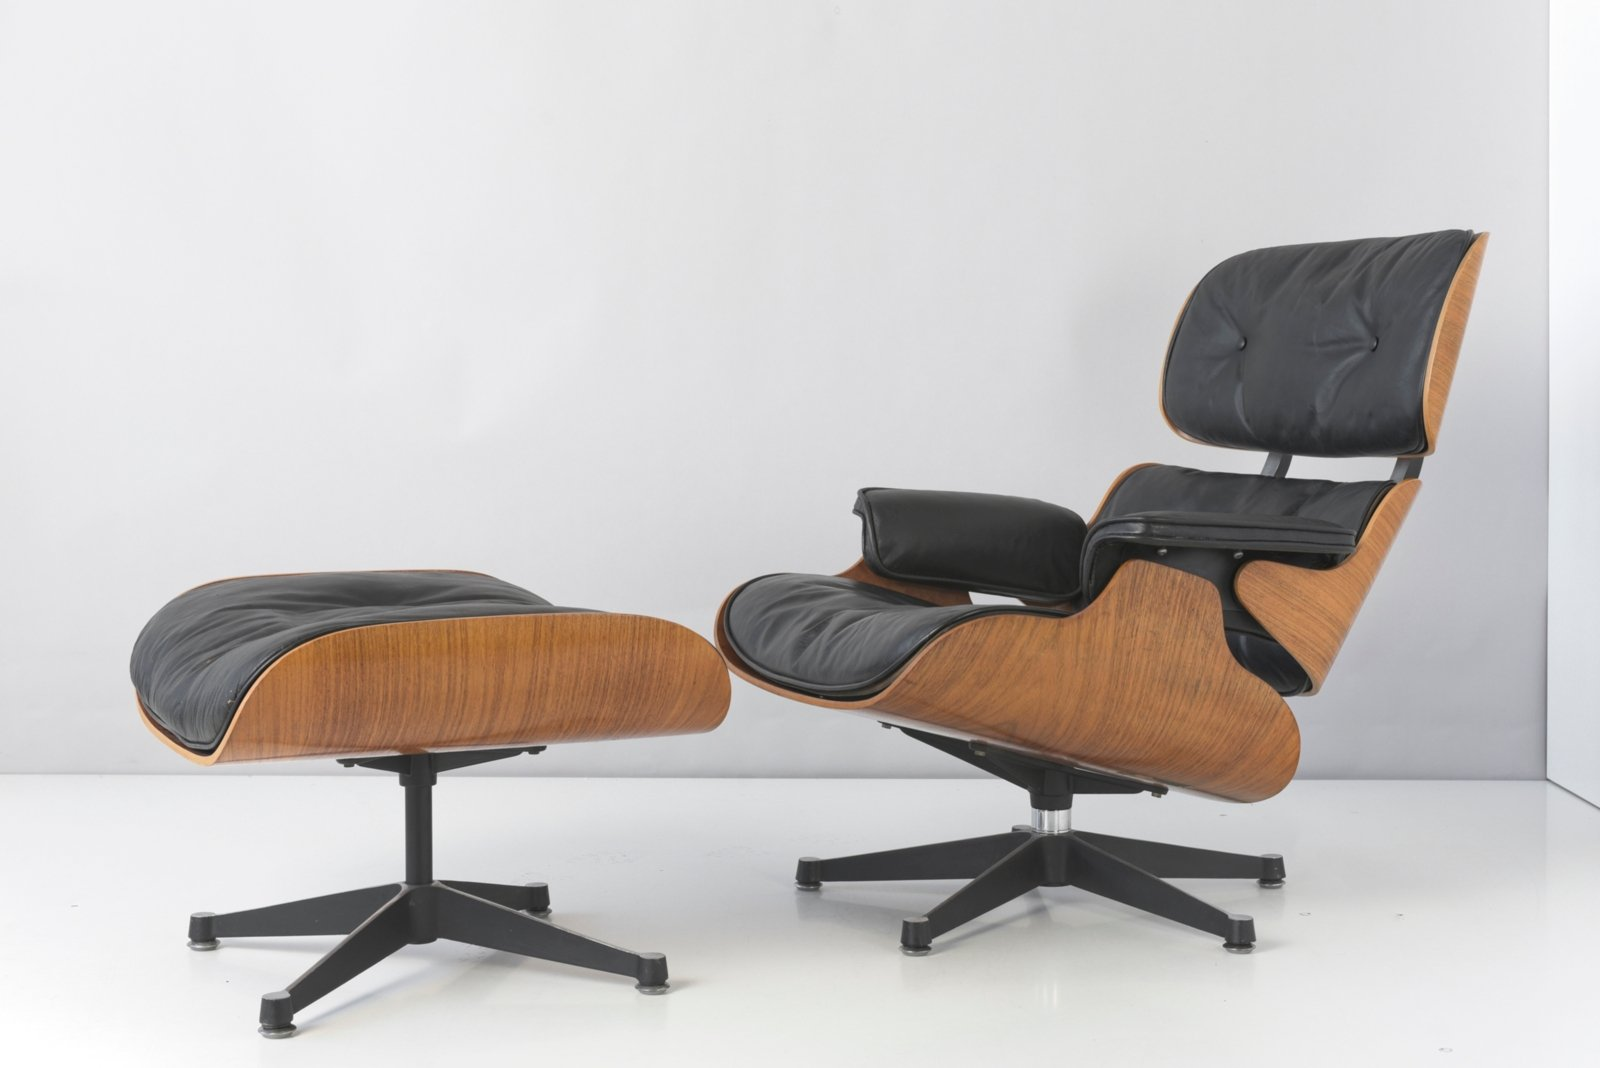 Charles Eames Lounge Chair Rosewood Lounge Chair & Ottoman By Charles & Ray Eames For Contura, 1950s, Set Of 2 For Sale At Pamono